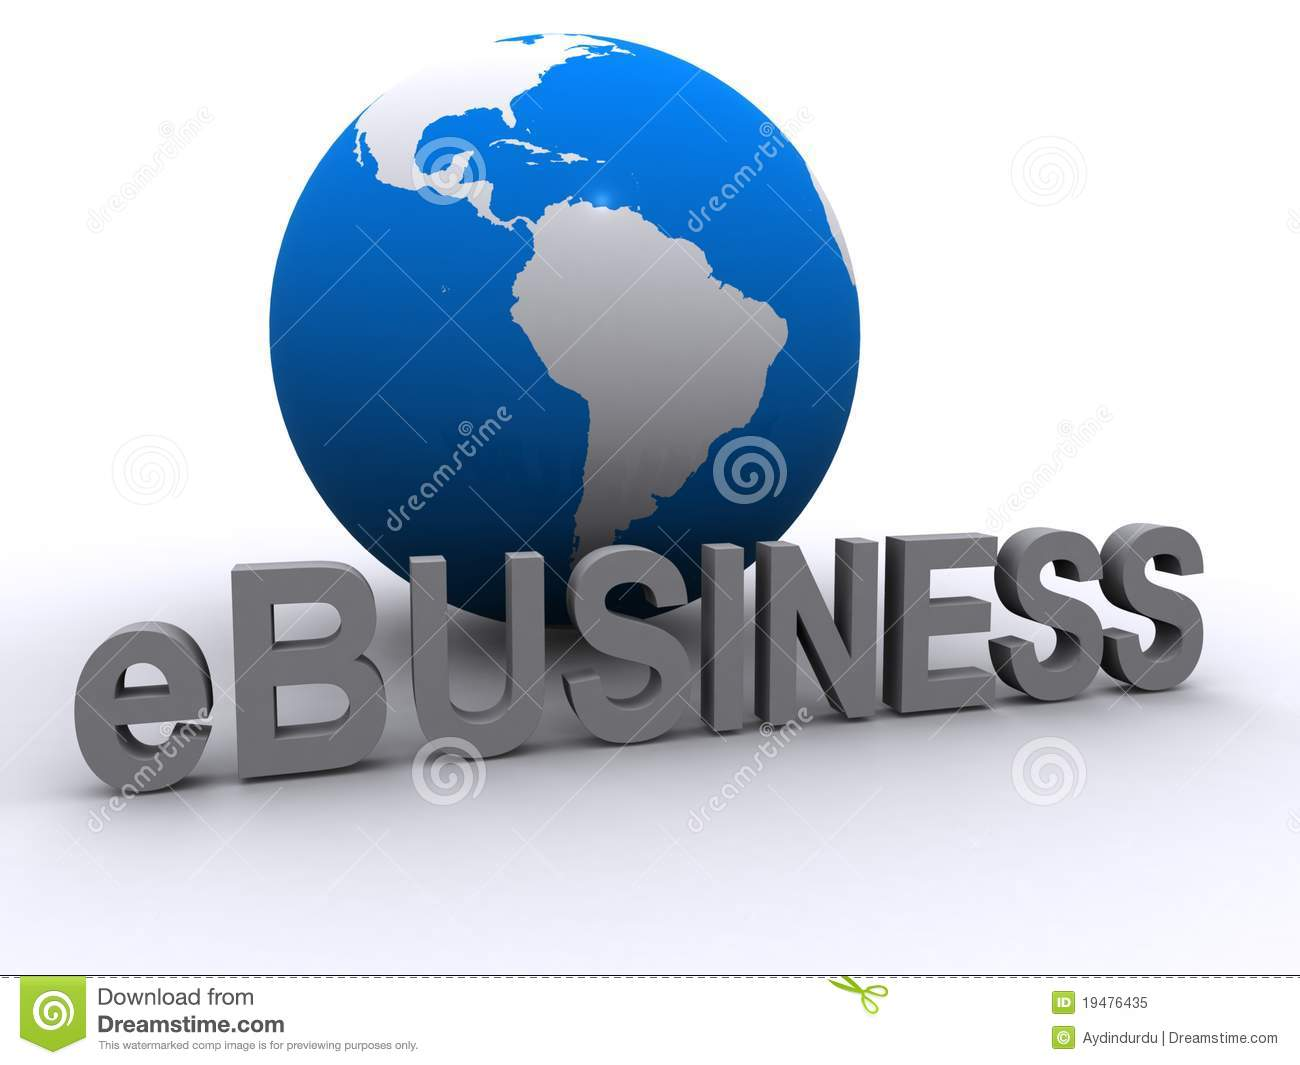 global e business stock illustration image of commercial globe terrestre vector free globe europe vector free